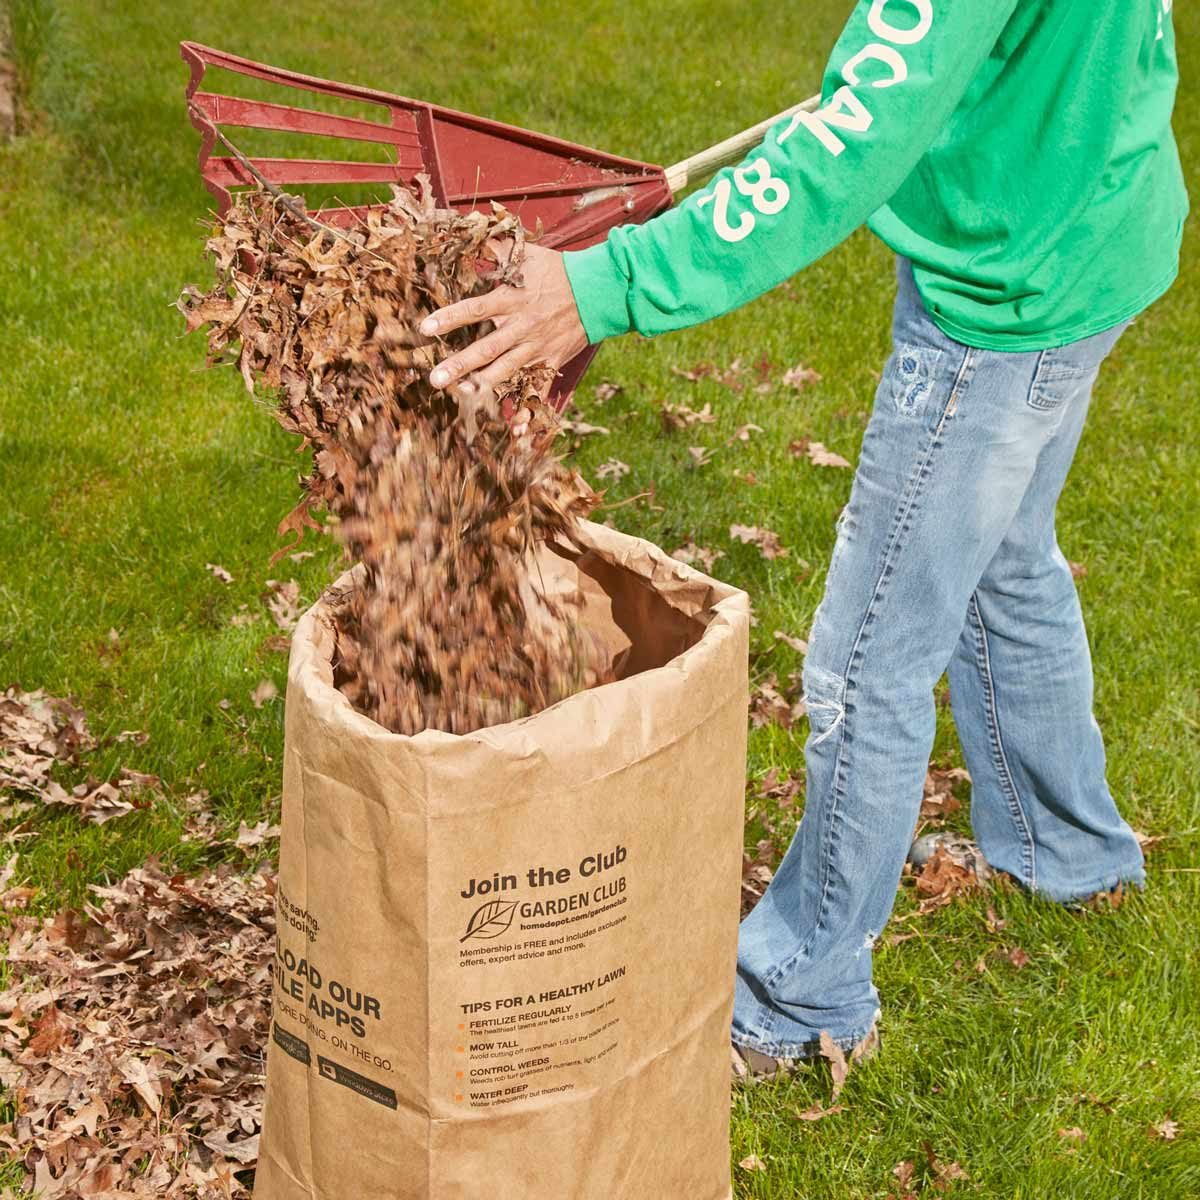 leaf bag stiffener — tip from the family handyman